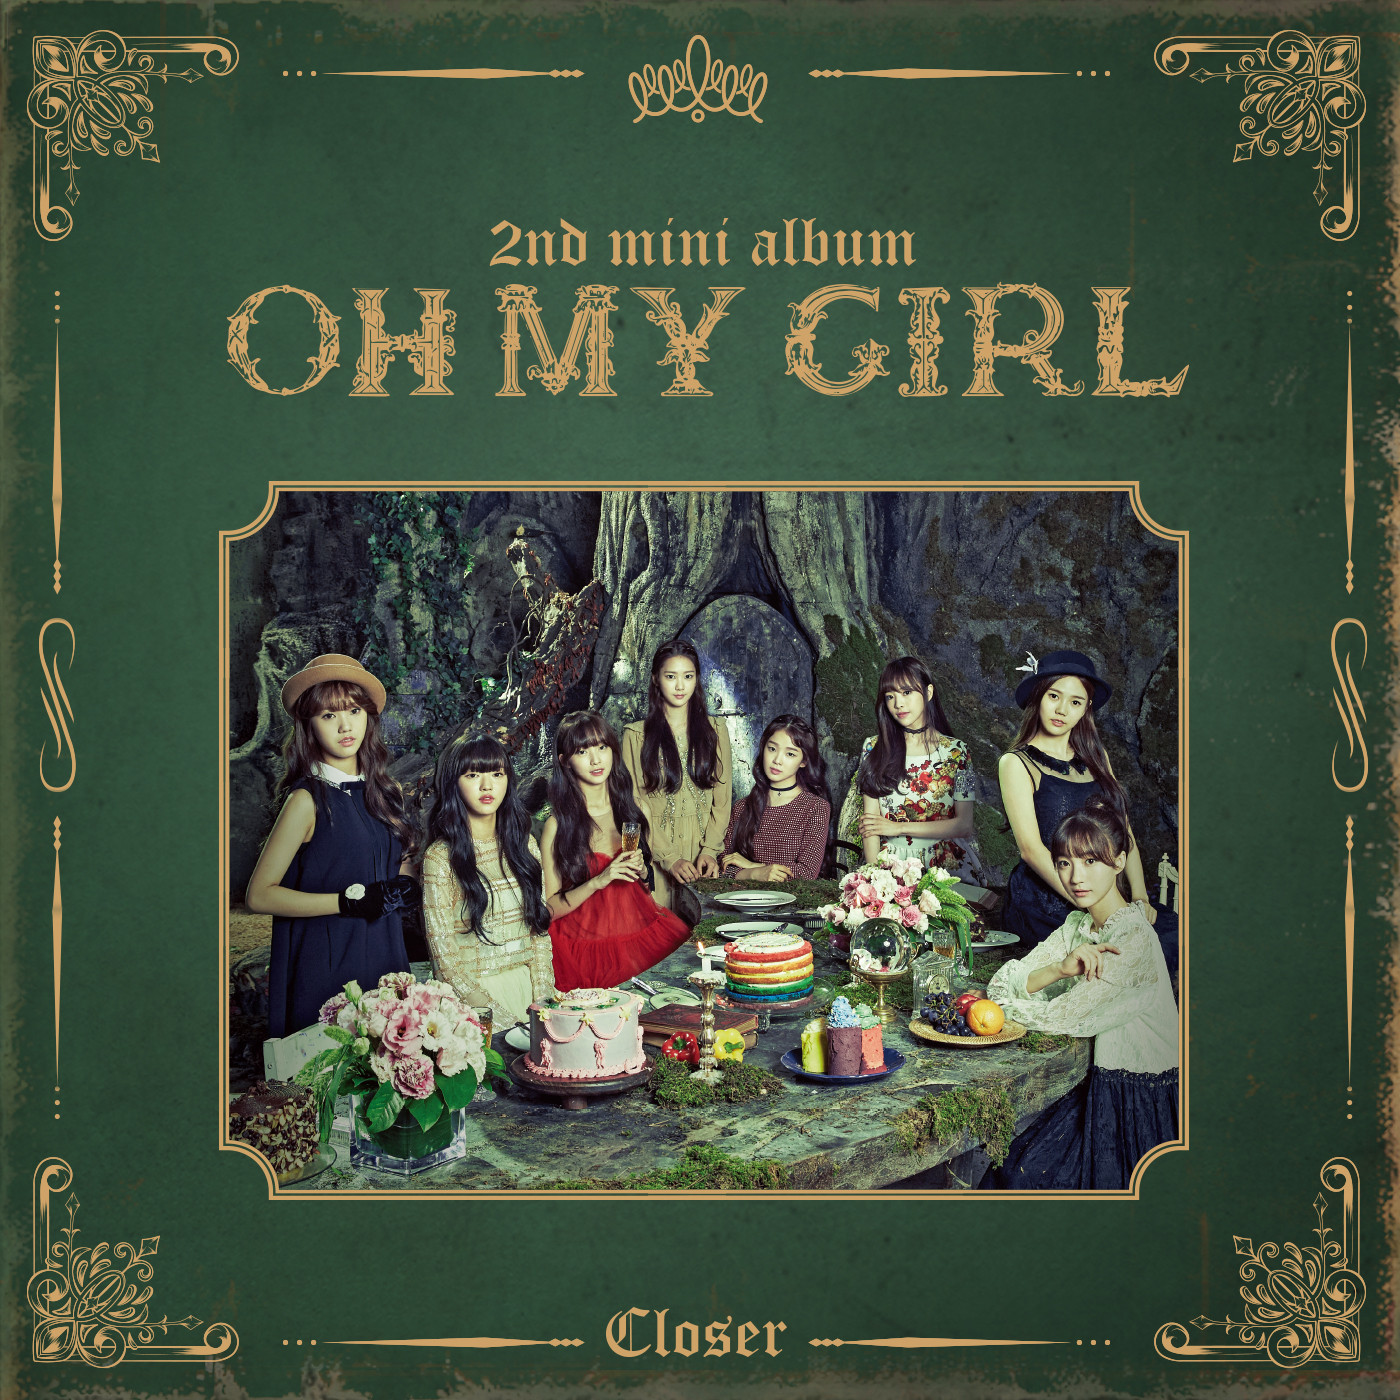 Closer (OH MY GIRL)